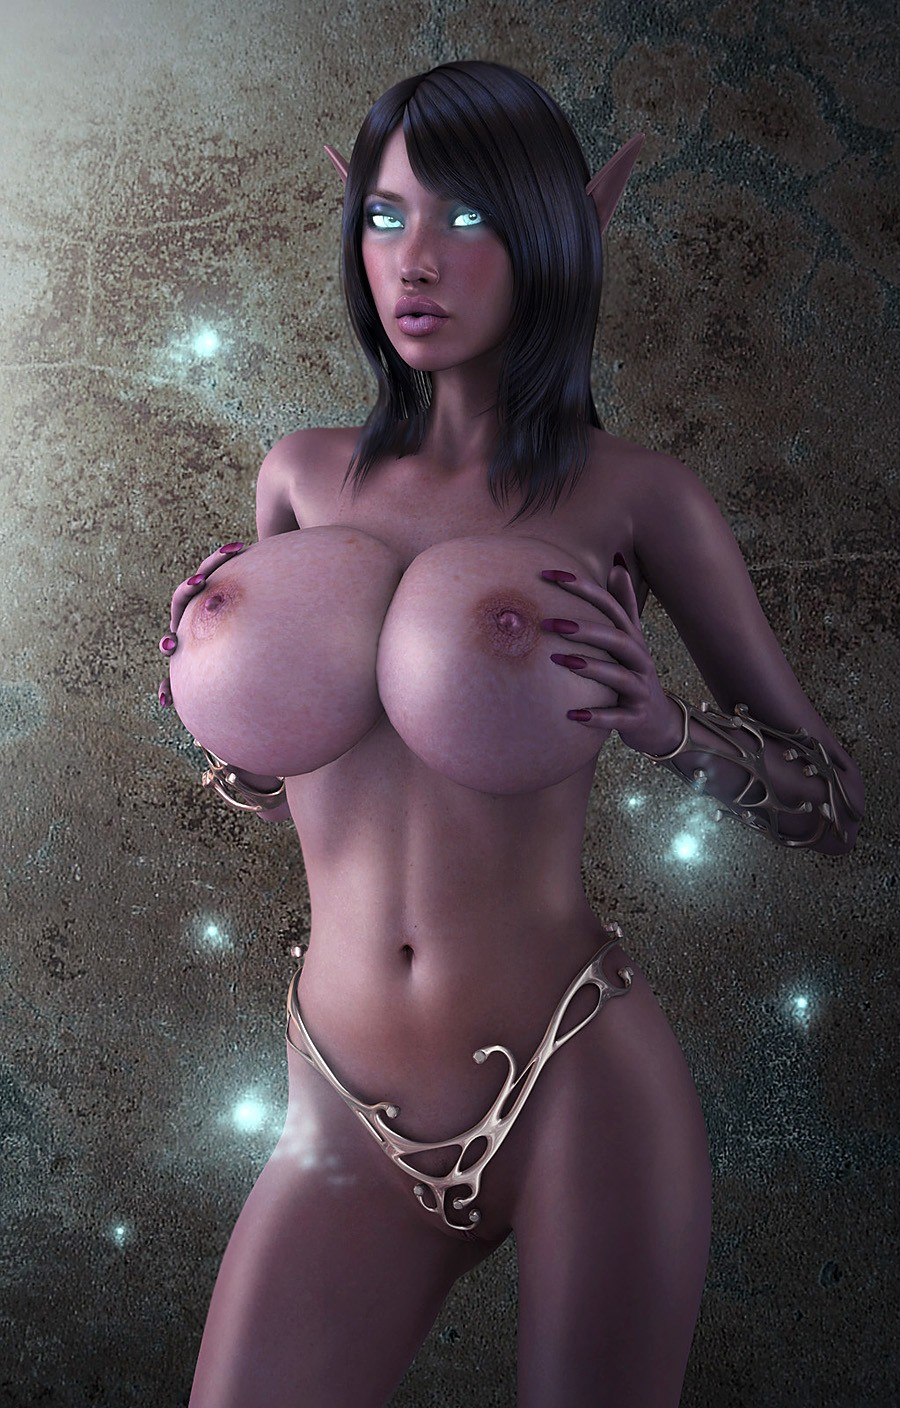 Warcraft big tits pics nsfw galleries